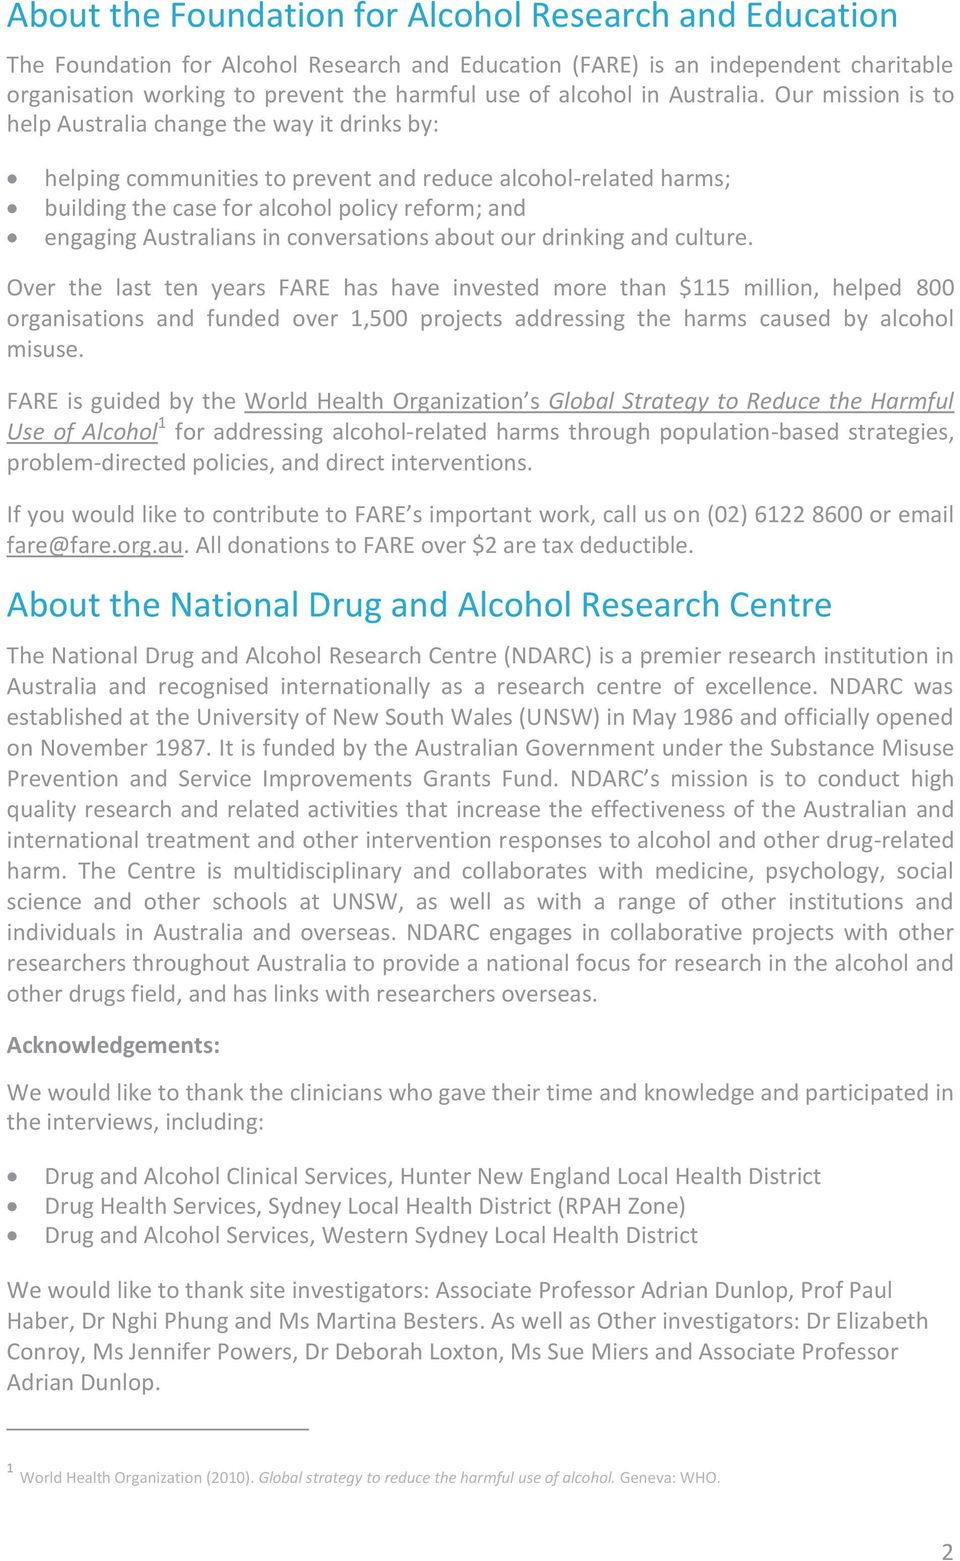 Our mission is to help Australia change the way it drinks by: helping communities to prevent and reduce alcohol-related harms; building the case for alcohol policy reform; and engaging Australians in